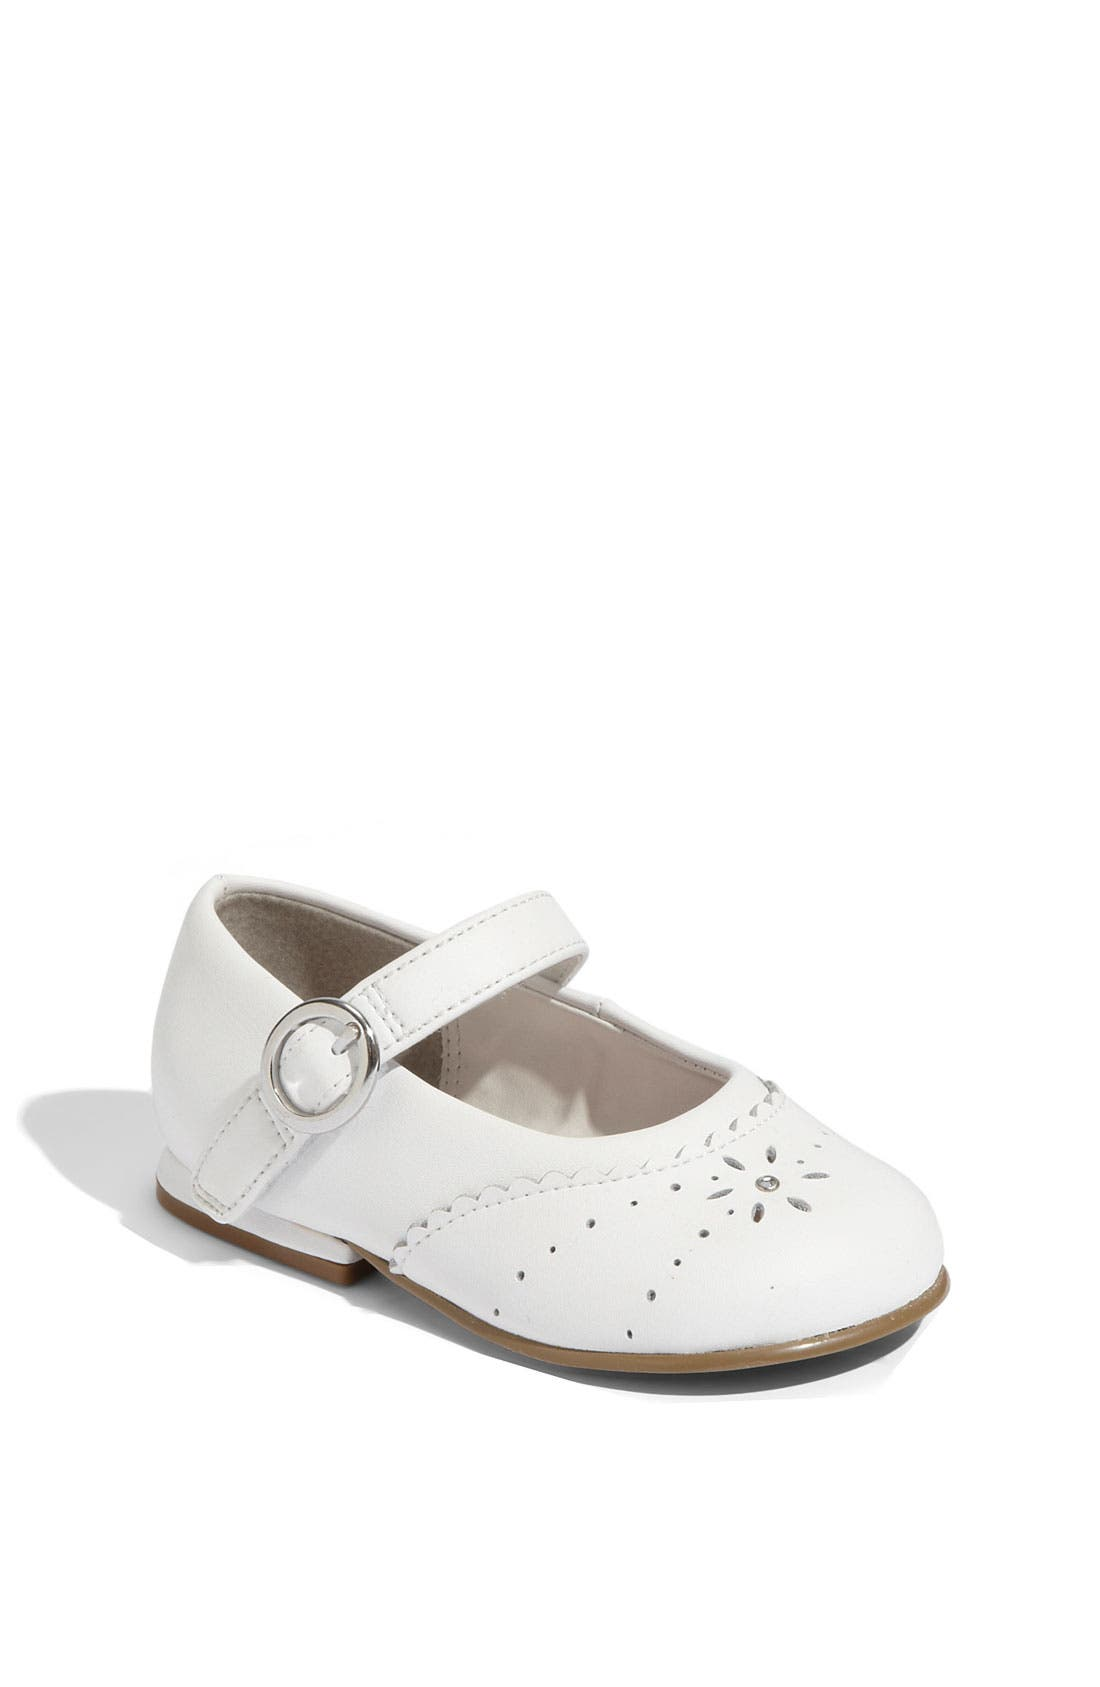 STRIDE RITE,                             'Camila' Mary Jane,                             Main thumbnail 1, color,                             White Leather